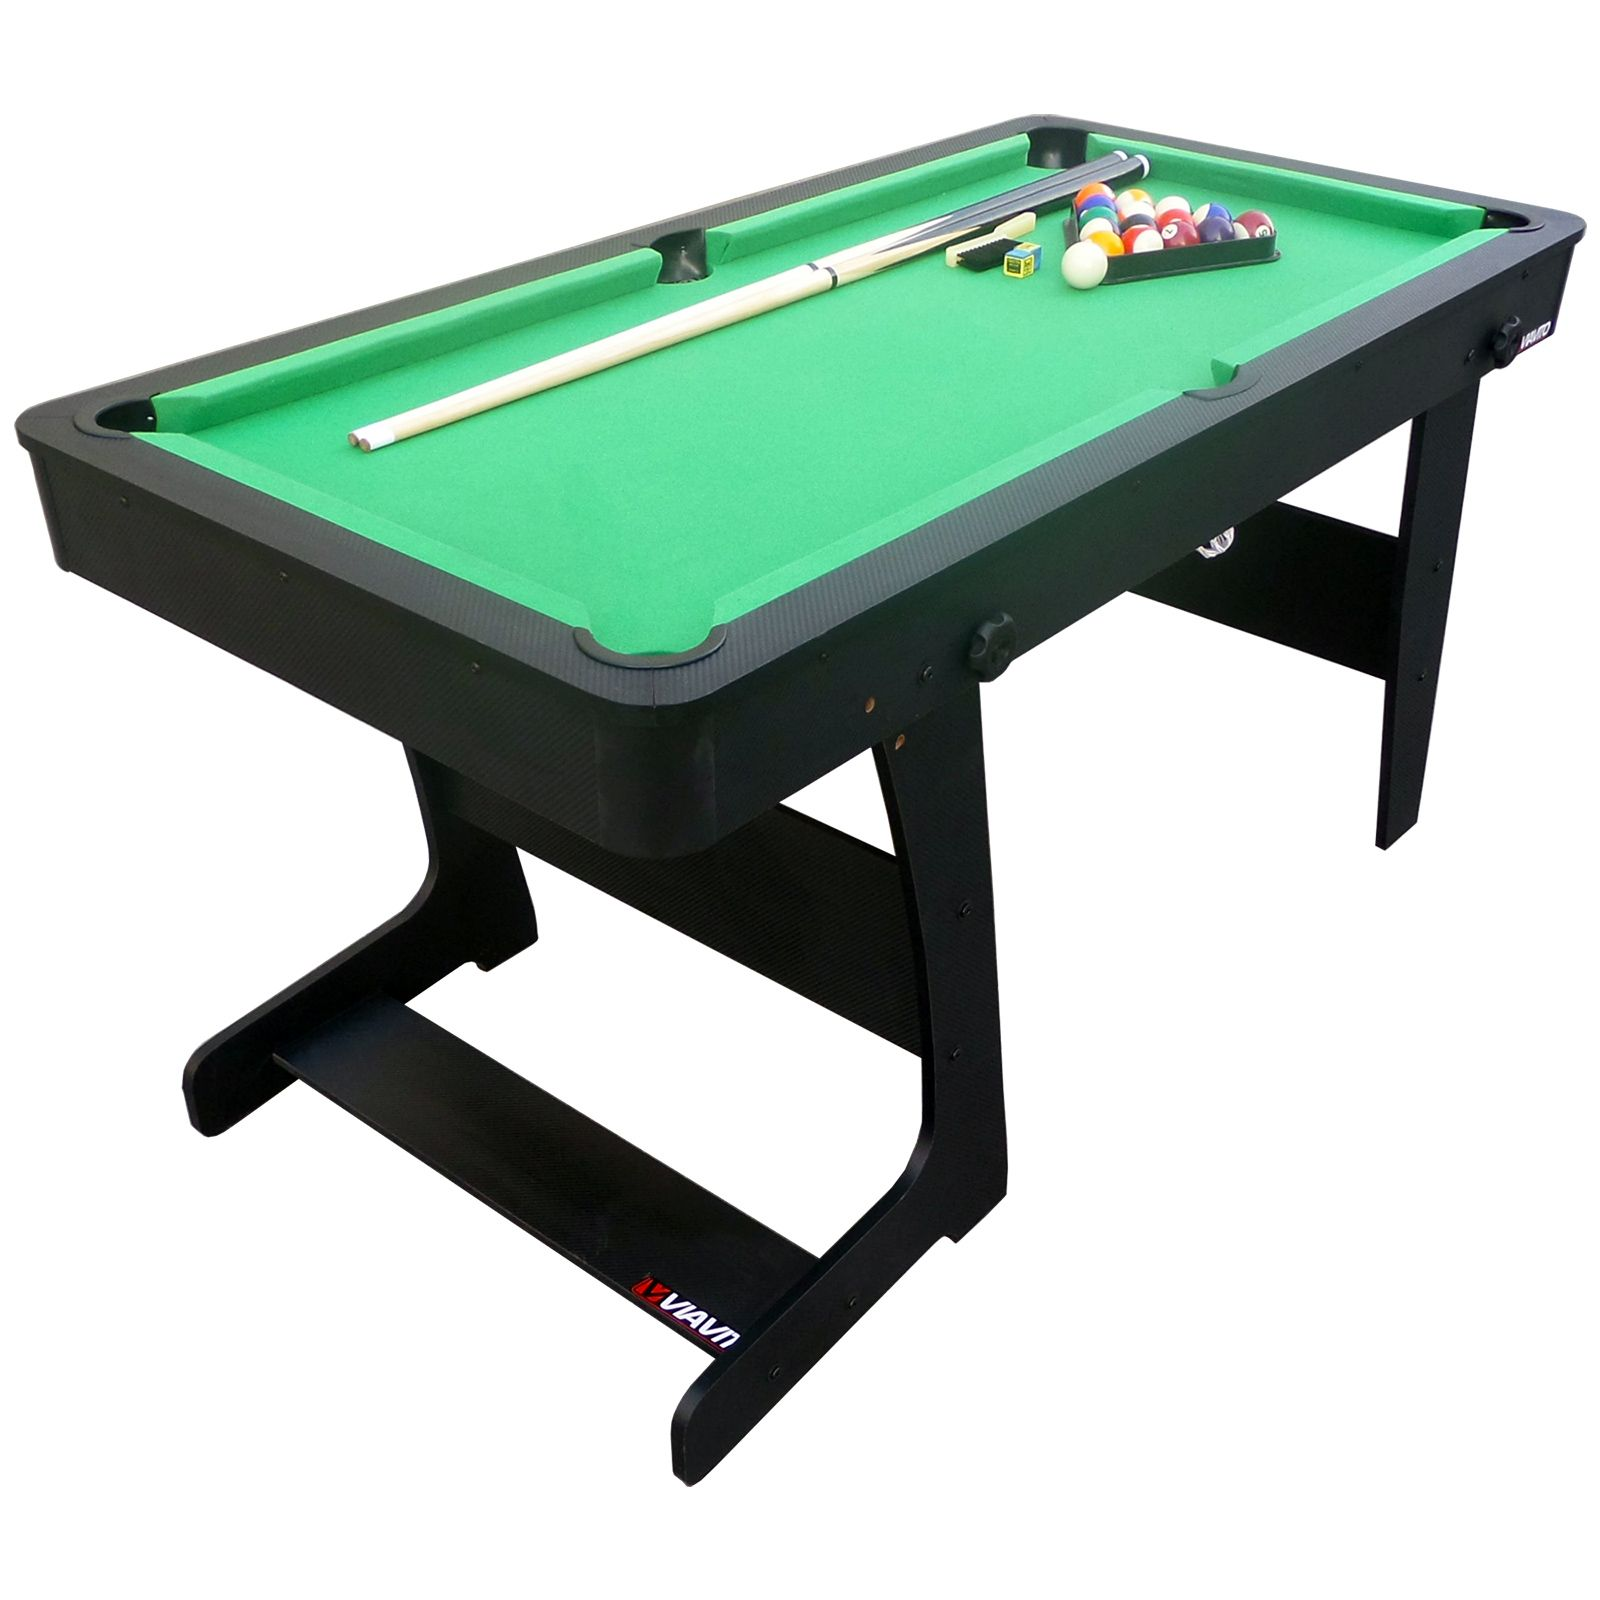 Gallery as well Nature Board Post Mounted Things That Fly further Viavito Pt100x 5ft Folding Pool Table likewise Eskadron Big Square Saddle Pad Powder Pink further 2991. on outdoor play equipment